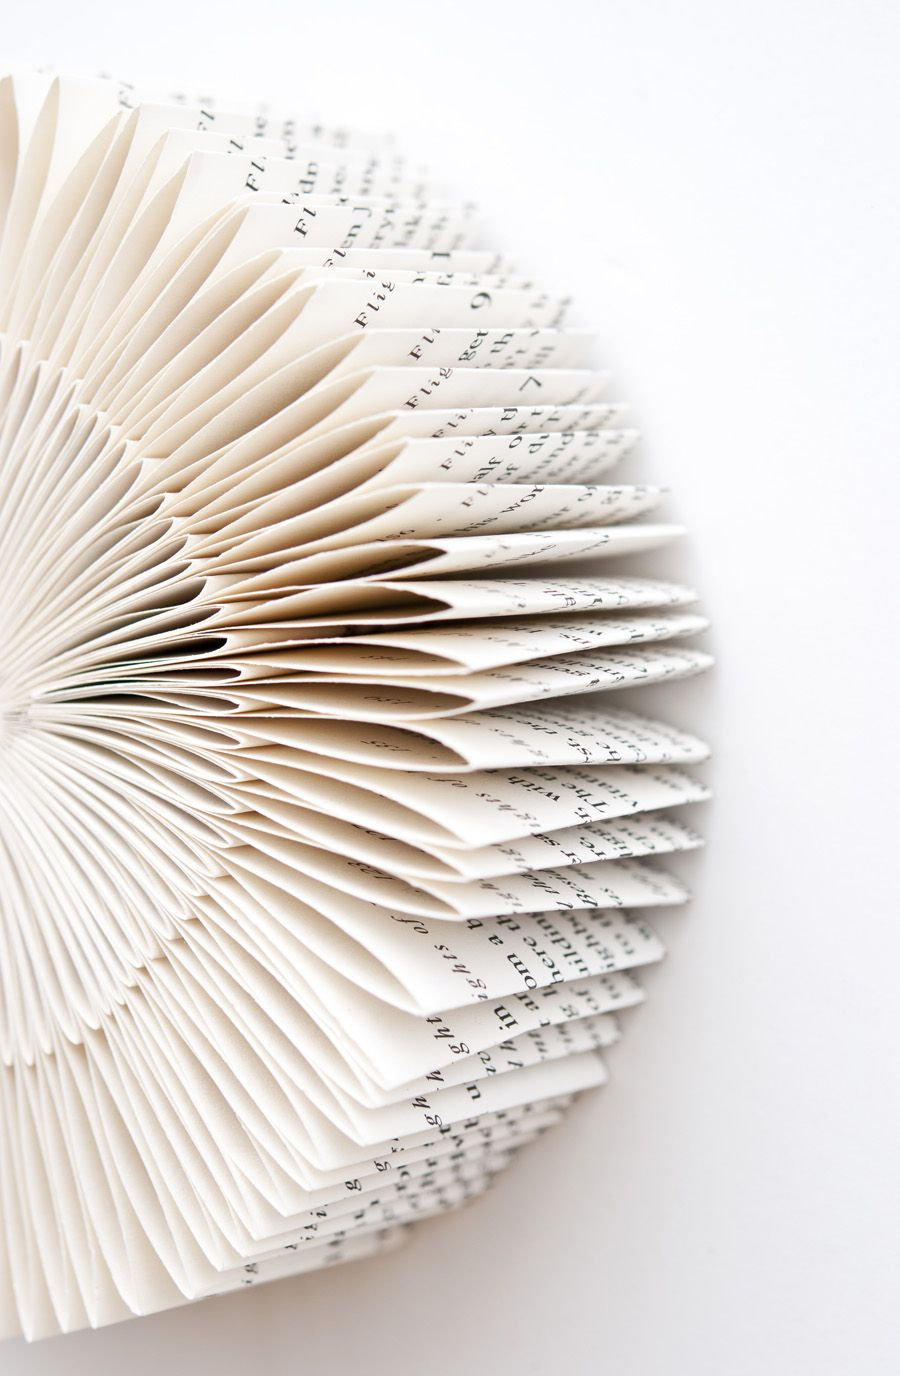 Pleated Language by Lisa Occhipinti This photograph will be used as the cover art for an upcoming book titled The Artists Library, due out spring 2014!